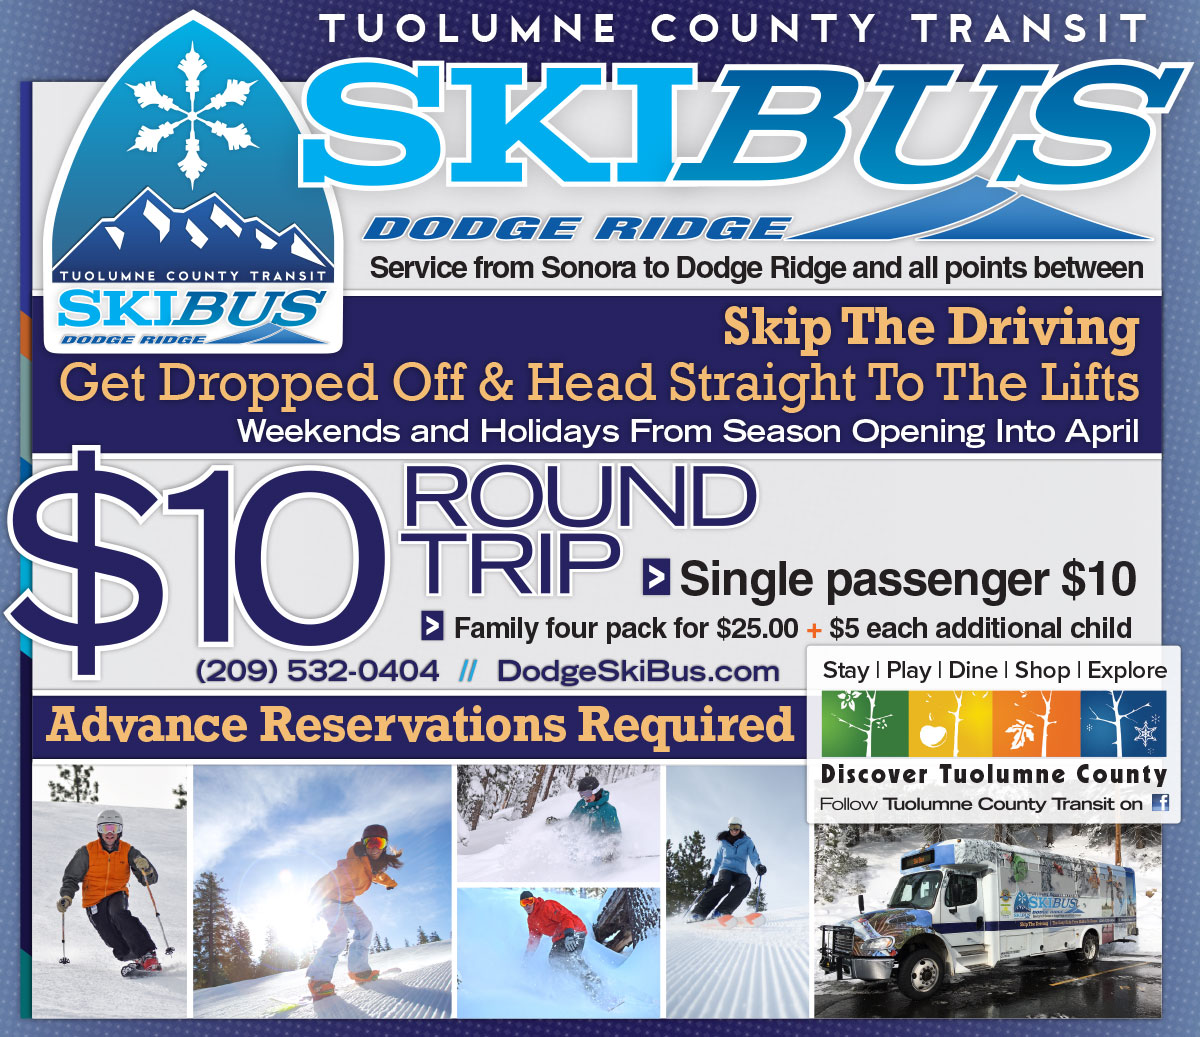 Tuolumne County Transit - Dodge Ridge Ski Bus - $10 Round Trip from Sonora to Dodge Ridge and all points in between.